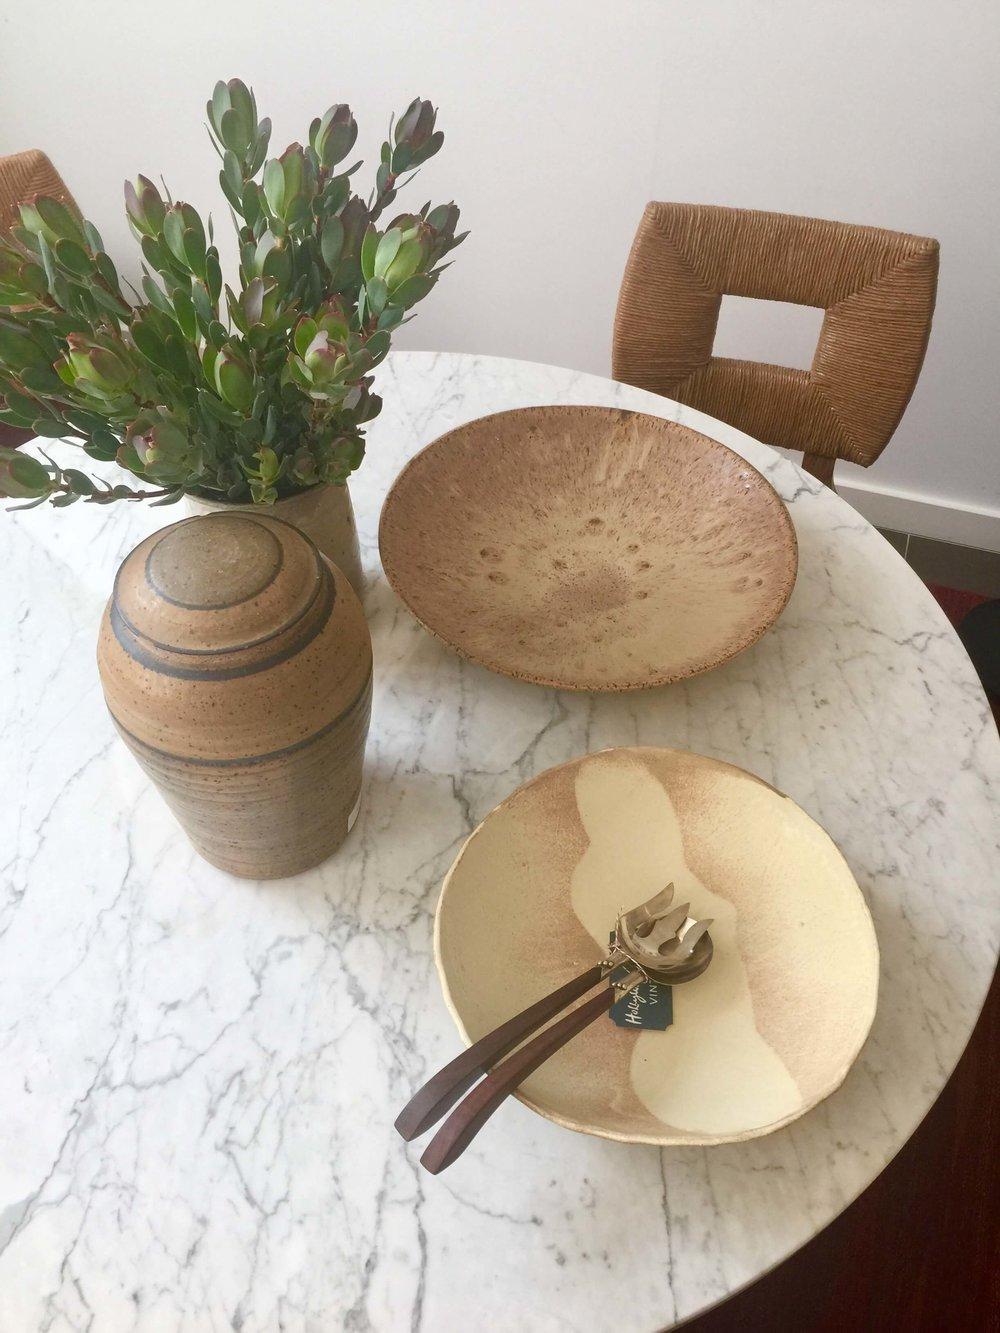 White marble table top with handmade ceramic bowls and rush chair in Hollywood at Home, Los Angeles home furnishings shop #whitemarble #marbletable #tablestyling